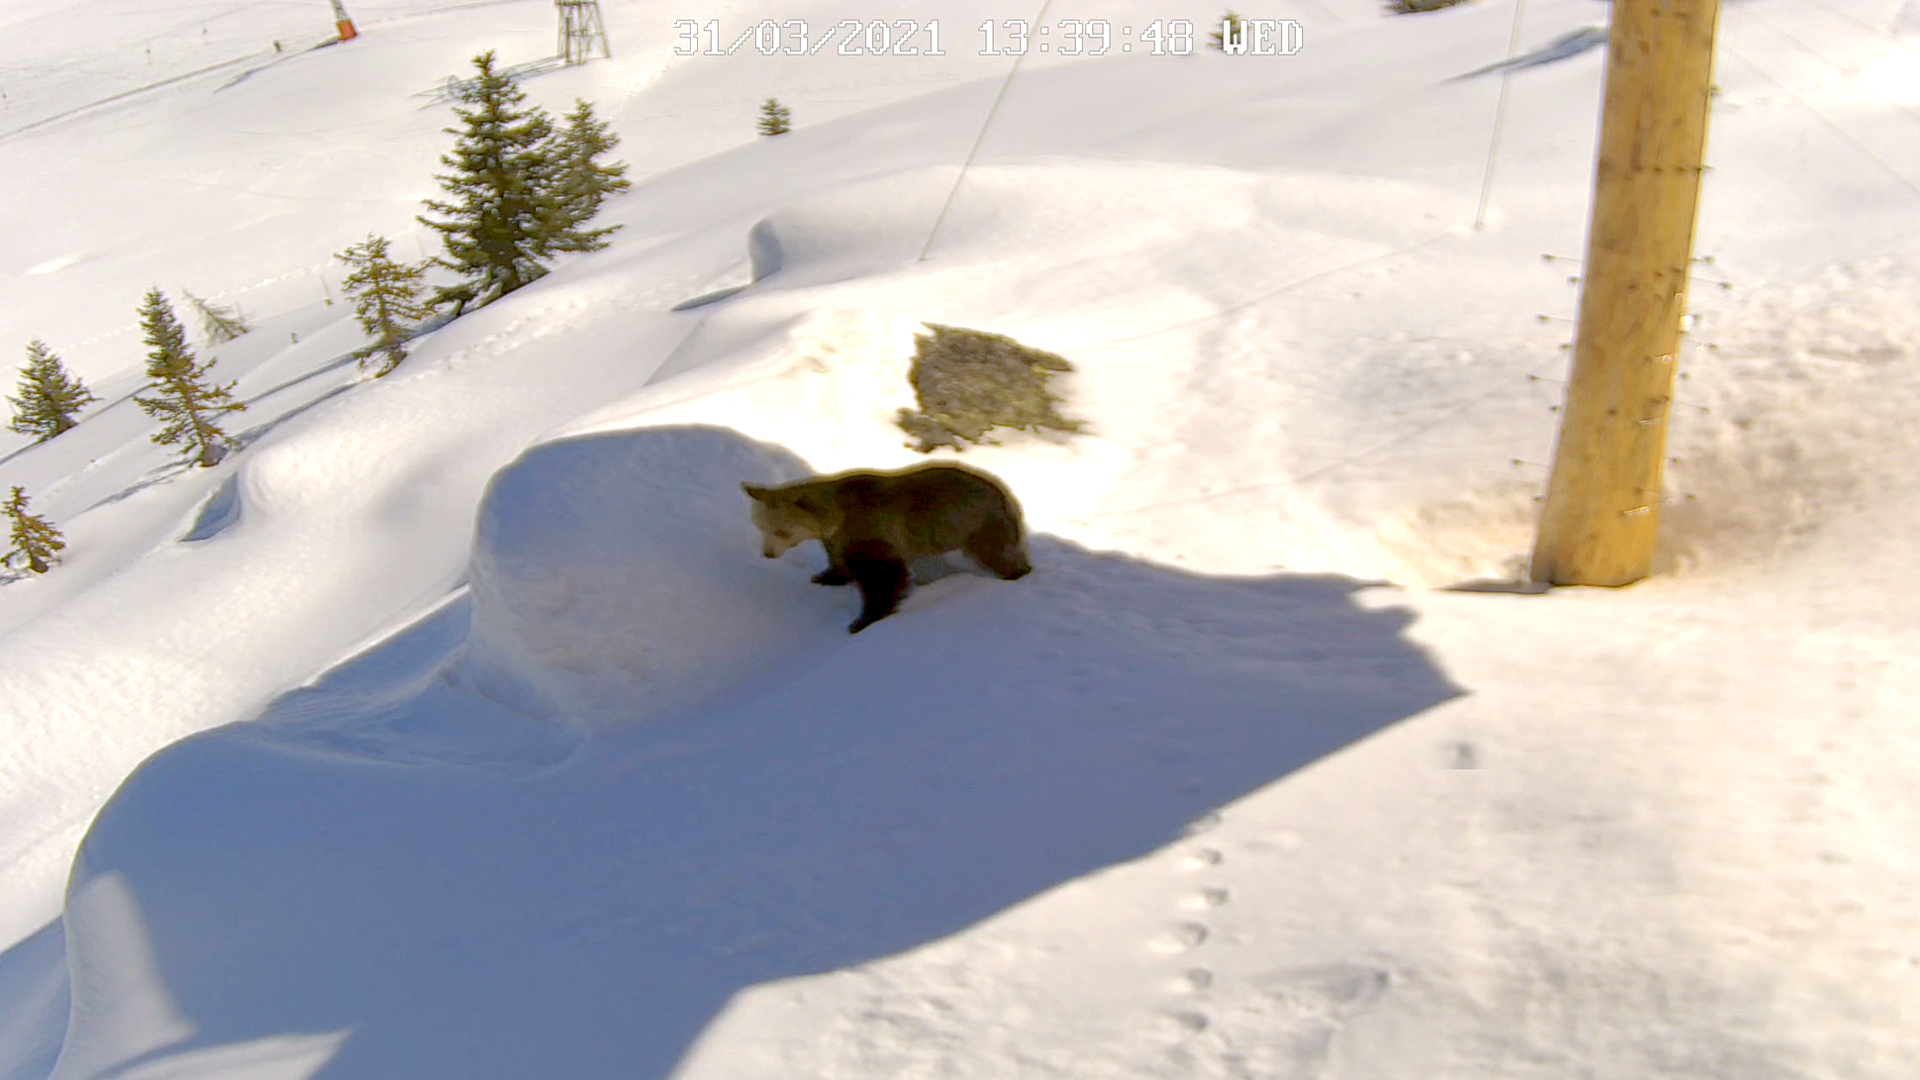 VIDEO: Amelia, The Bear, Pops Out Of Hole In Snow After Months Of Hibernation